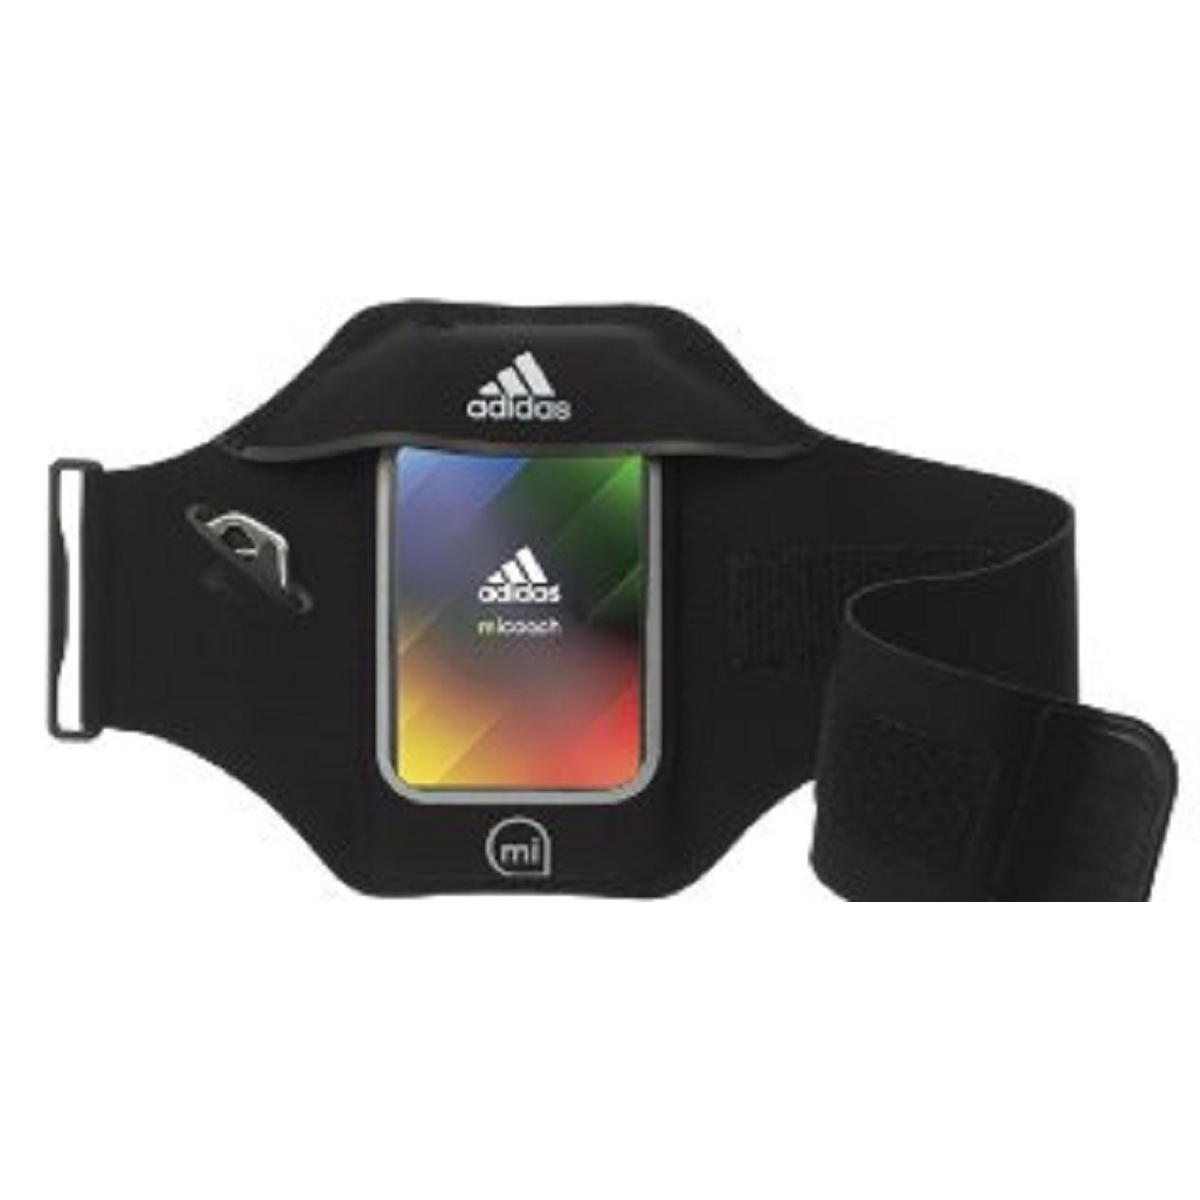 Griffin Adidas miCoach Armband f�r Smartphone